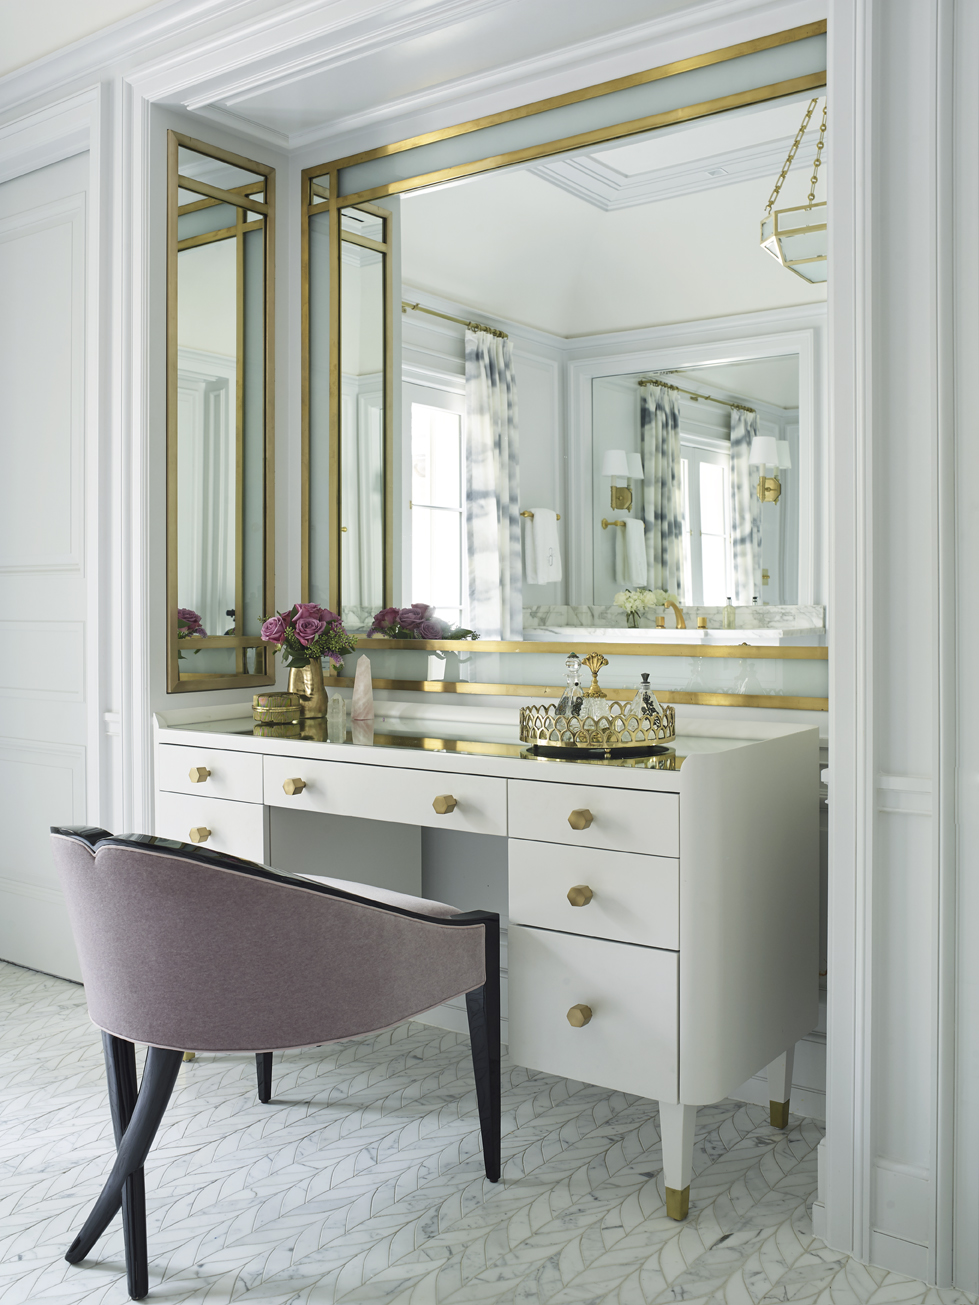 The master bath features a sophisticated vanity set within an alcove.